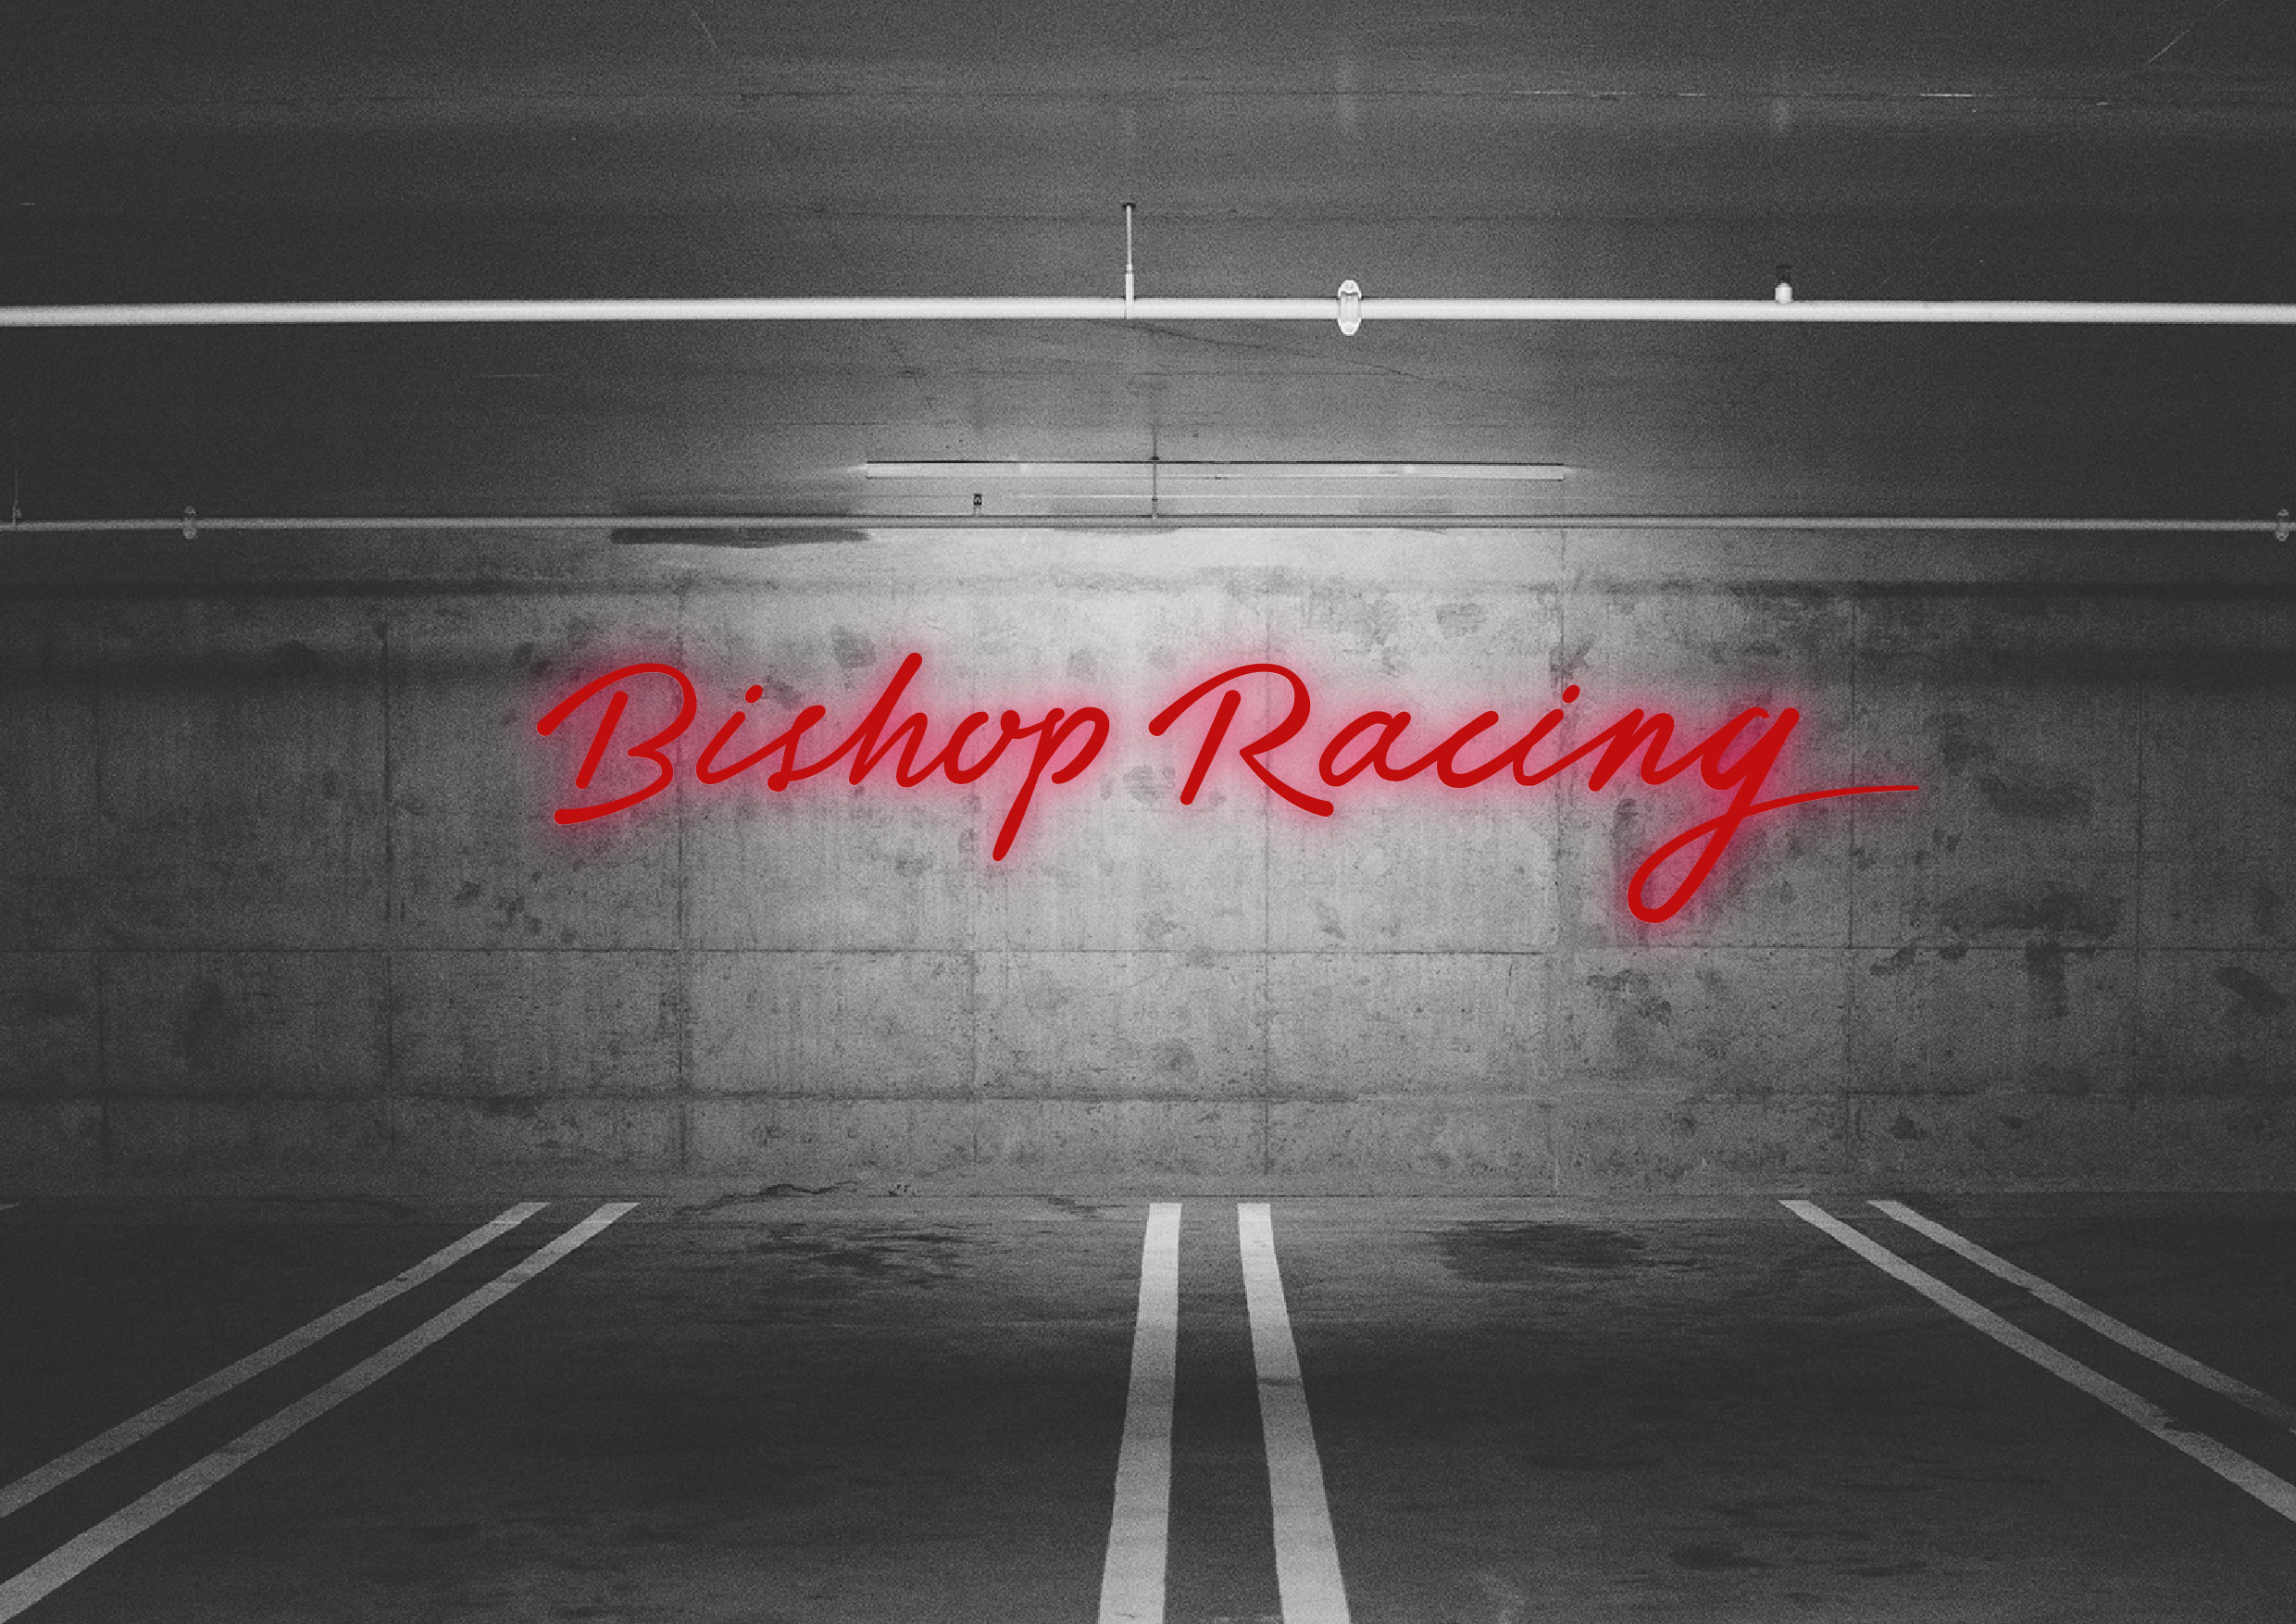 Bishop Racing - Custom Logotype Design